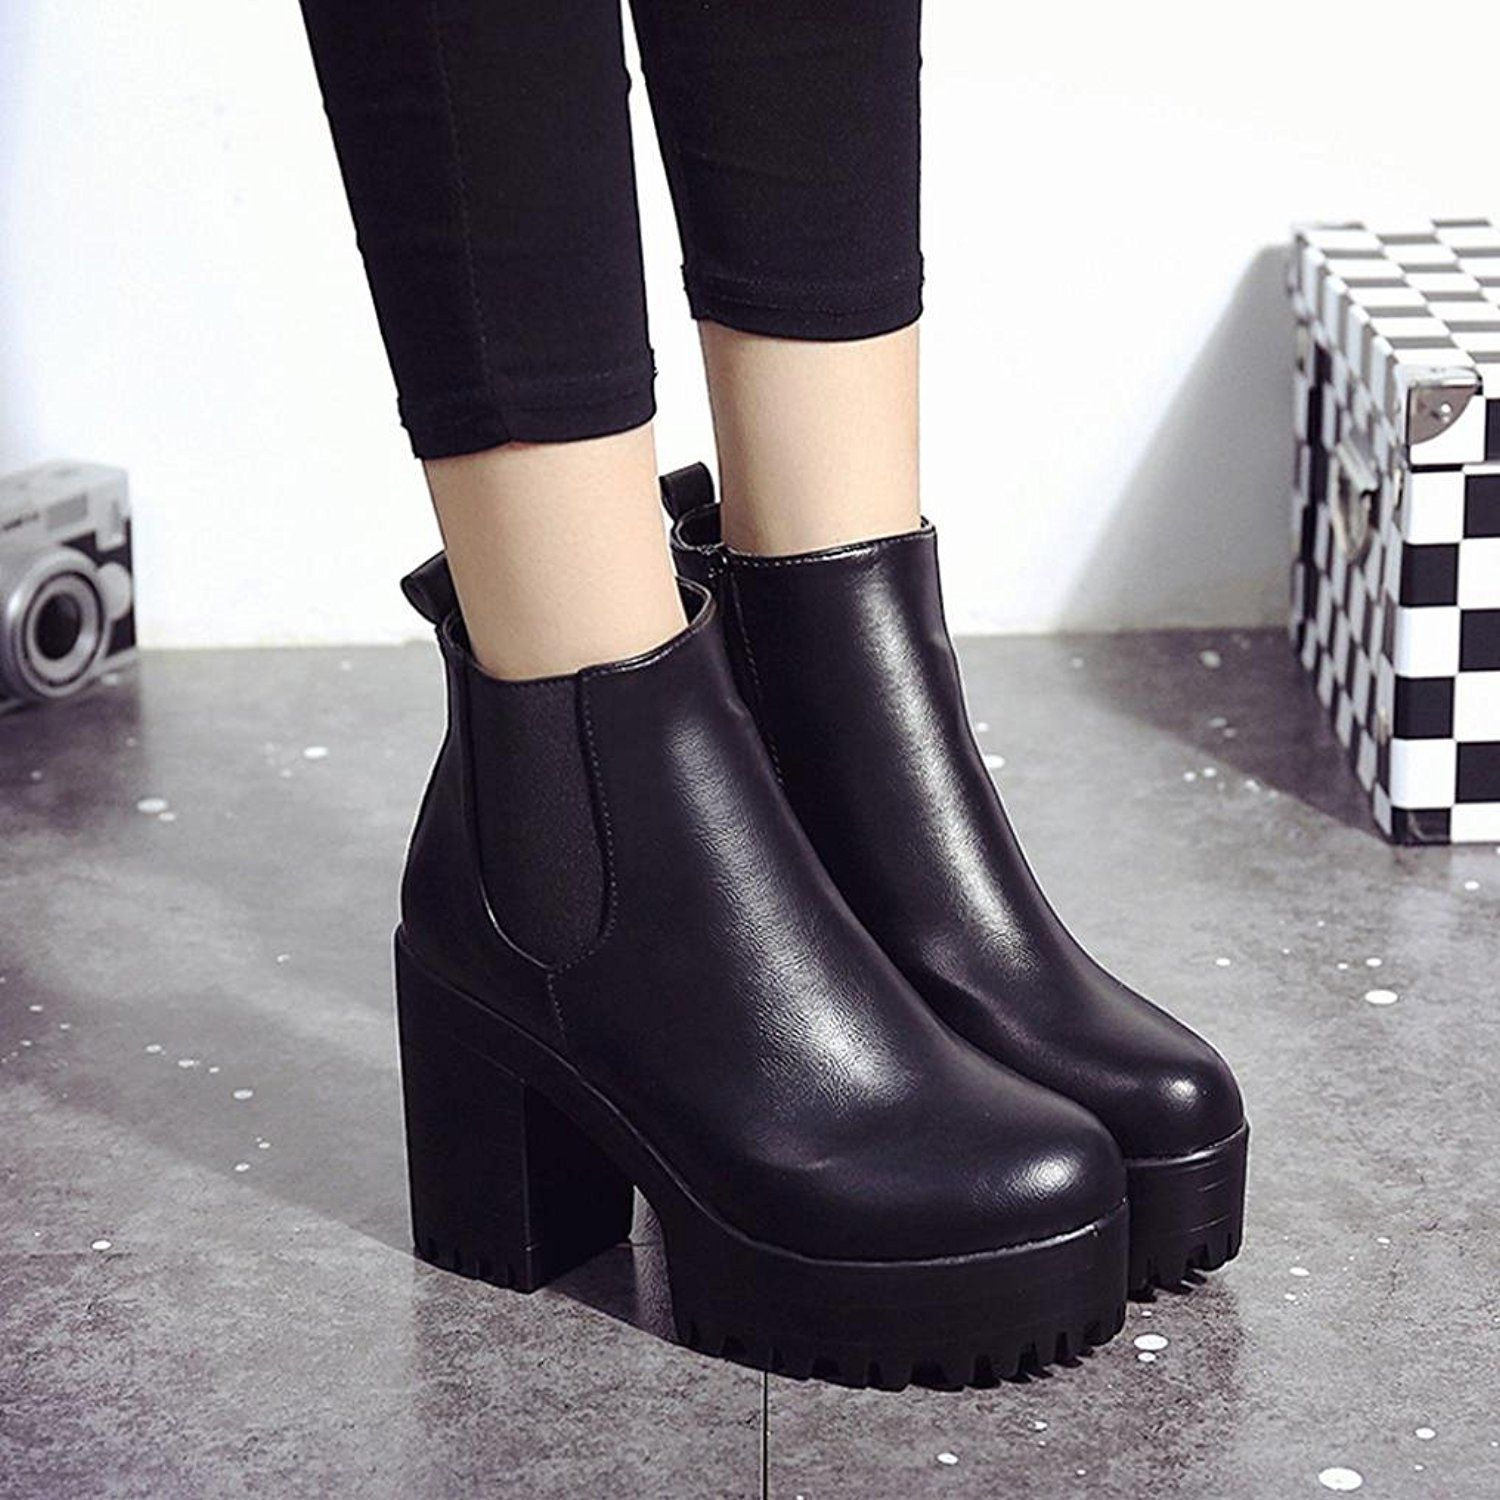 Women's Lace Up Flat Booties Round Toe High Top Chunky Low Heel Ankle Boots